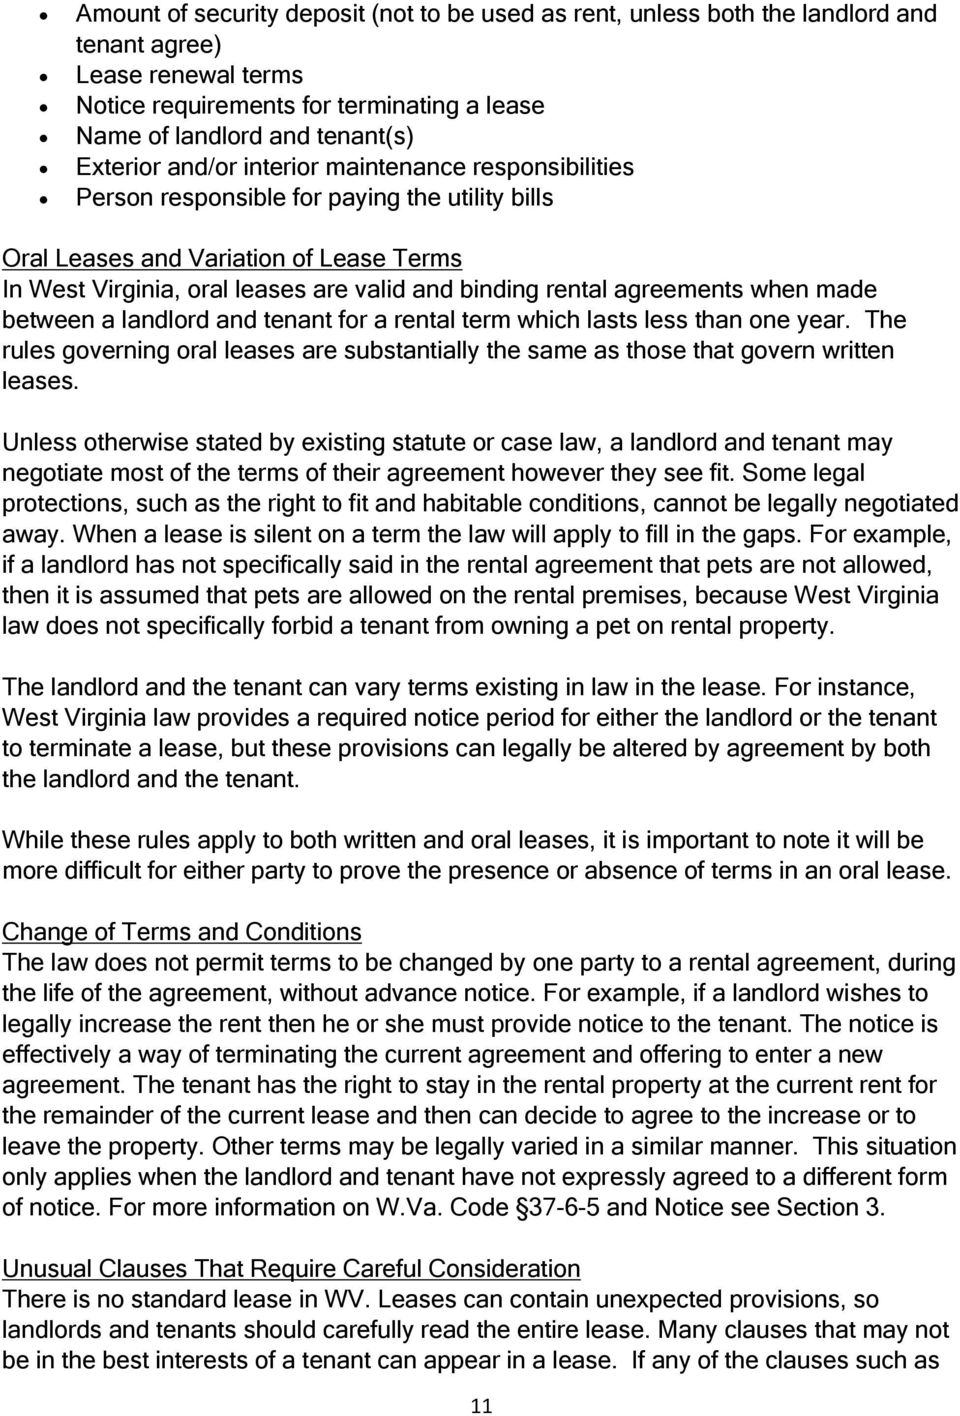 tenants and landlords in west virginia rights and agreements when made between a landlord and tenant for a rental term which lasts less than